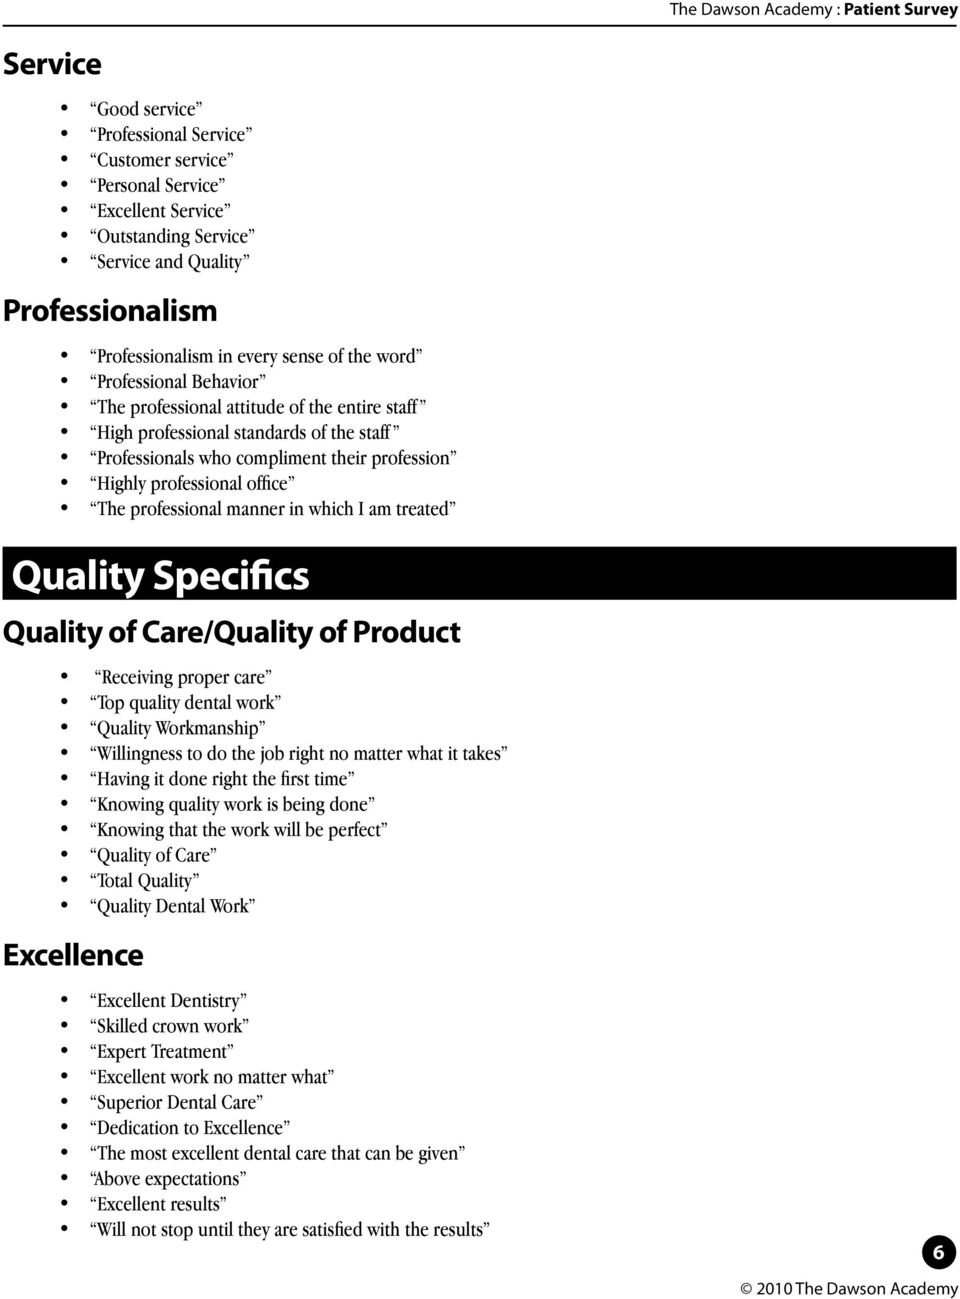 manner in which I am treated Quality Specifics Quality of Care/Quality of Product Receiving proper care Top quality dental work Quality Workmanship Willingness to do the job right no matter what it